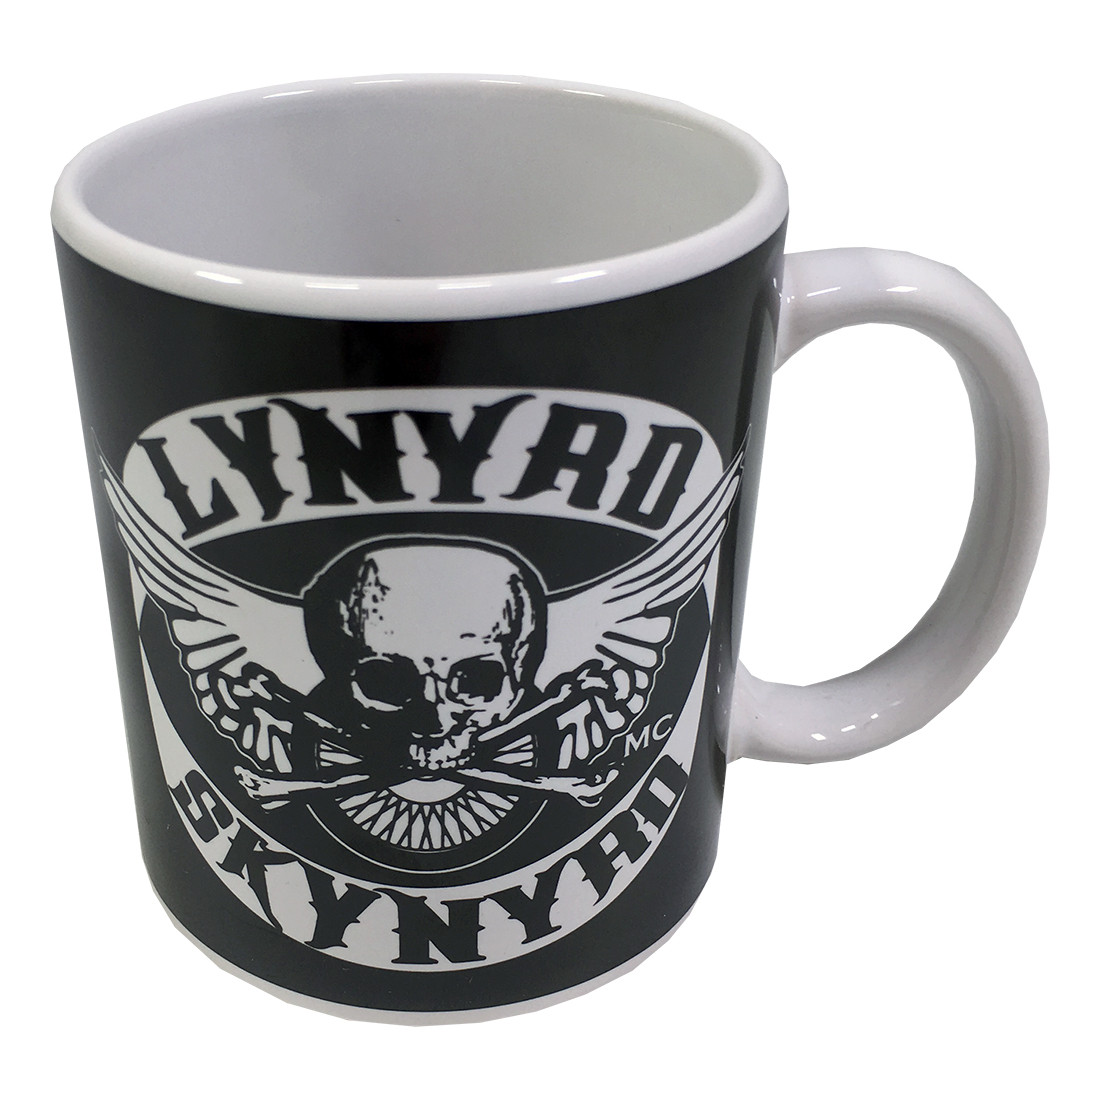 Skynyrd Biker Patch Mug Black